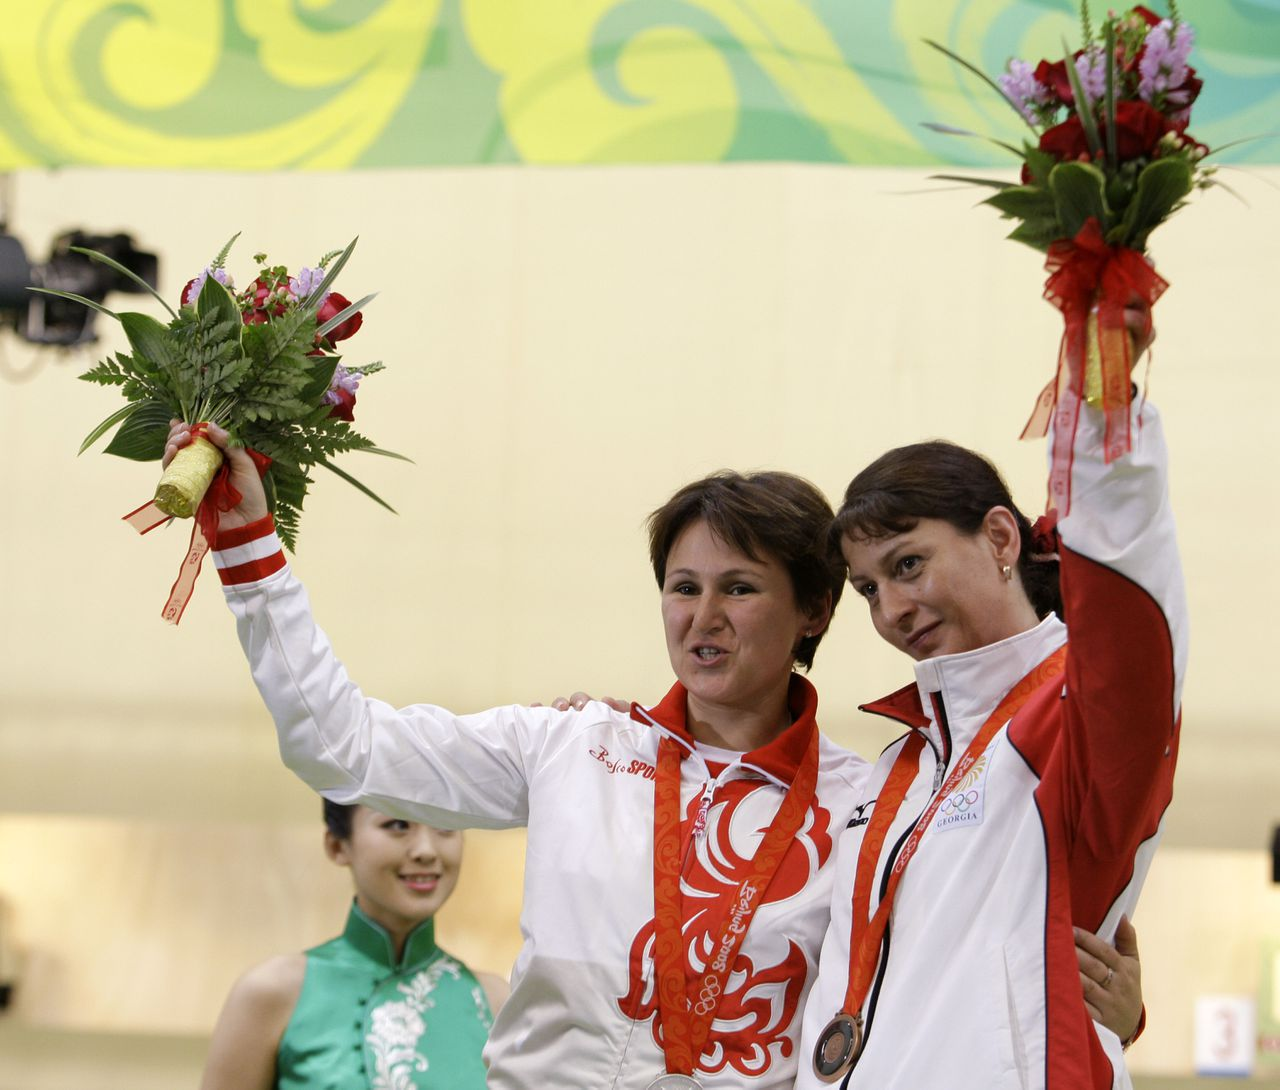 Russia's Natalia Paderina, left, and Georgia's Nino Salukvadze hug and wave during the medal ceremony after the women's 10 meter air pistol final at the Beijing 2008 Olympics in Beijing, Sunday, Aug. 10, 2008. Paderina won the silver medal and Salukvadze won bronze. (AP Photo/Sergey Ponomarev)